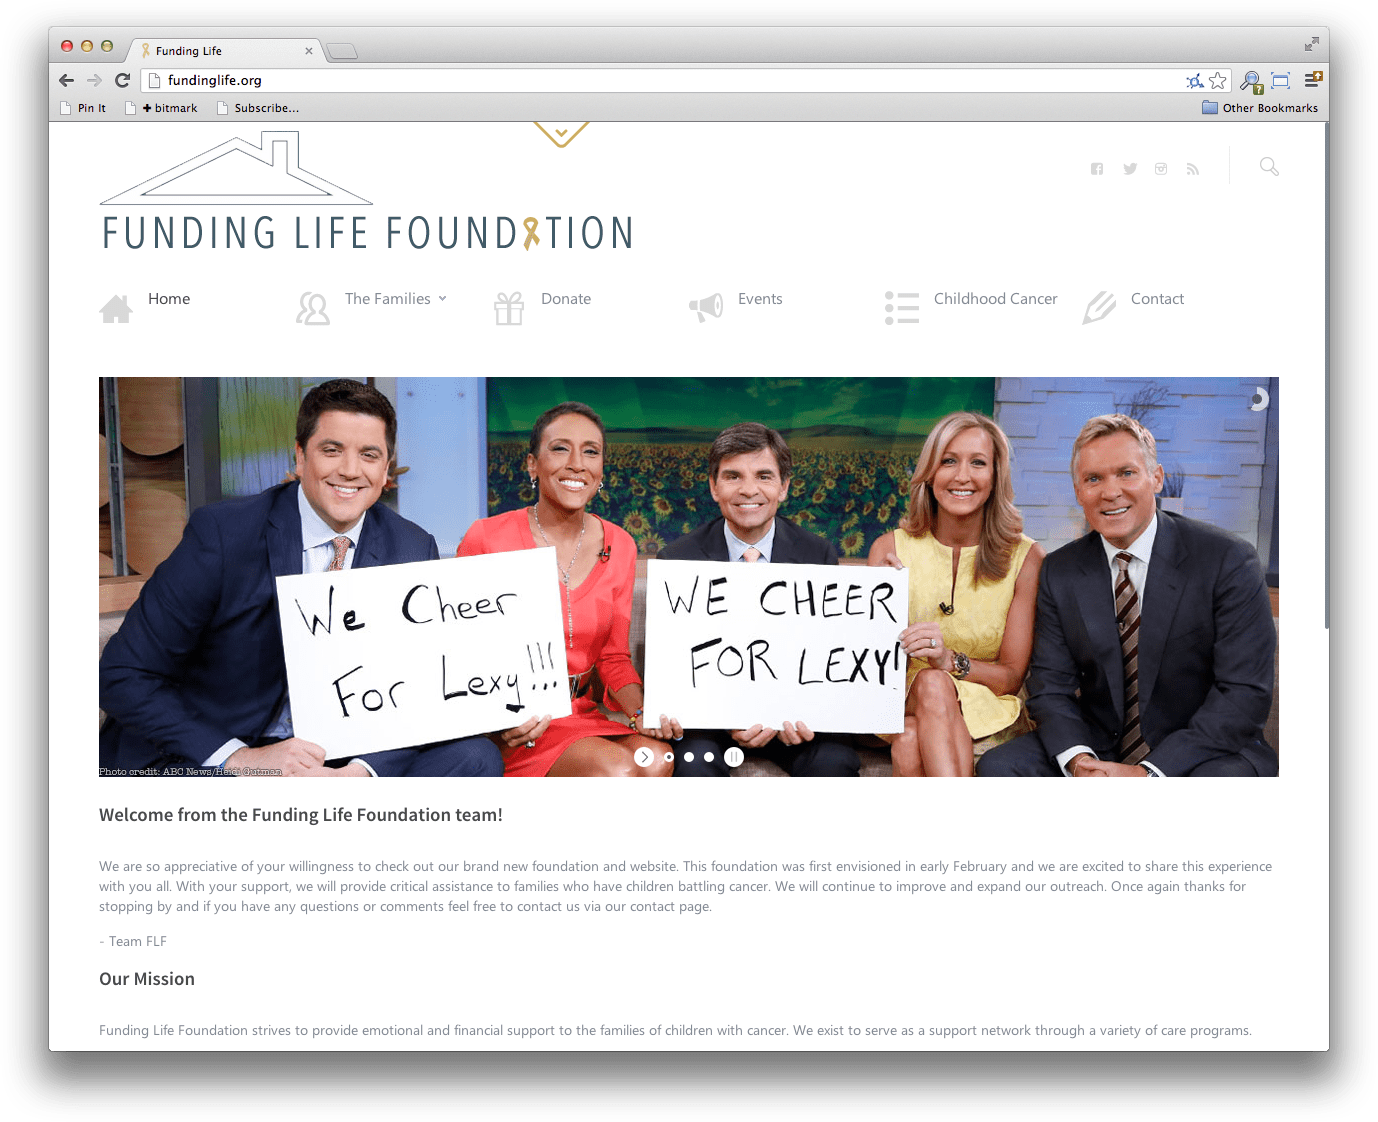 Funding Life Foundation